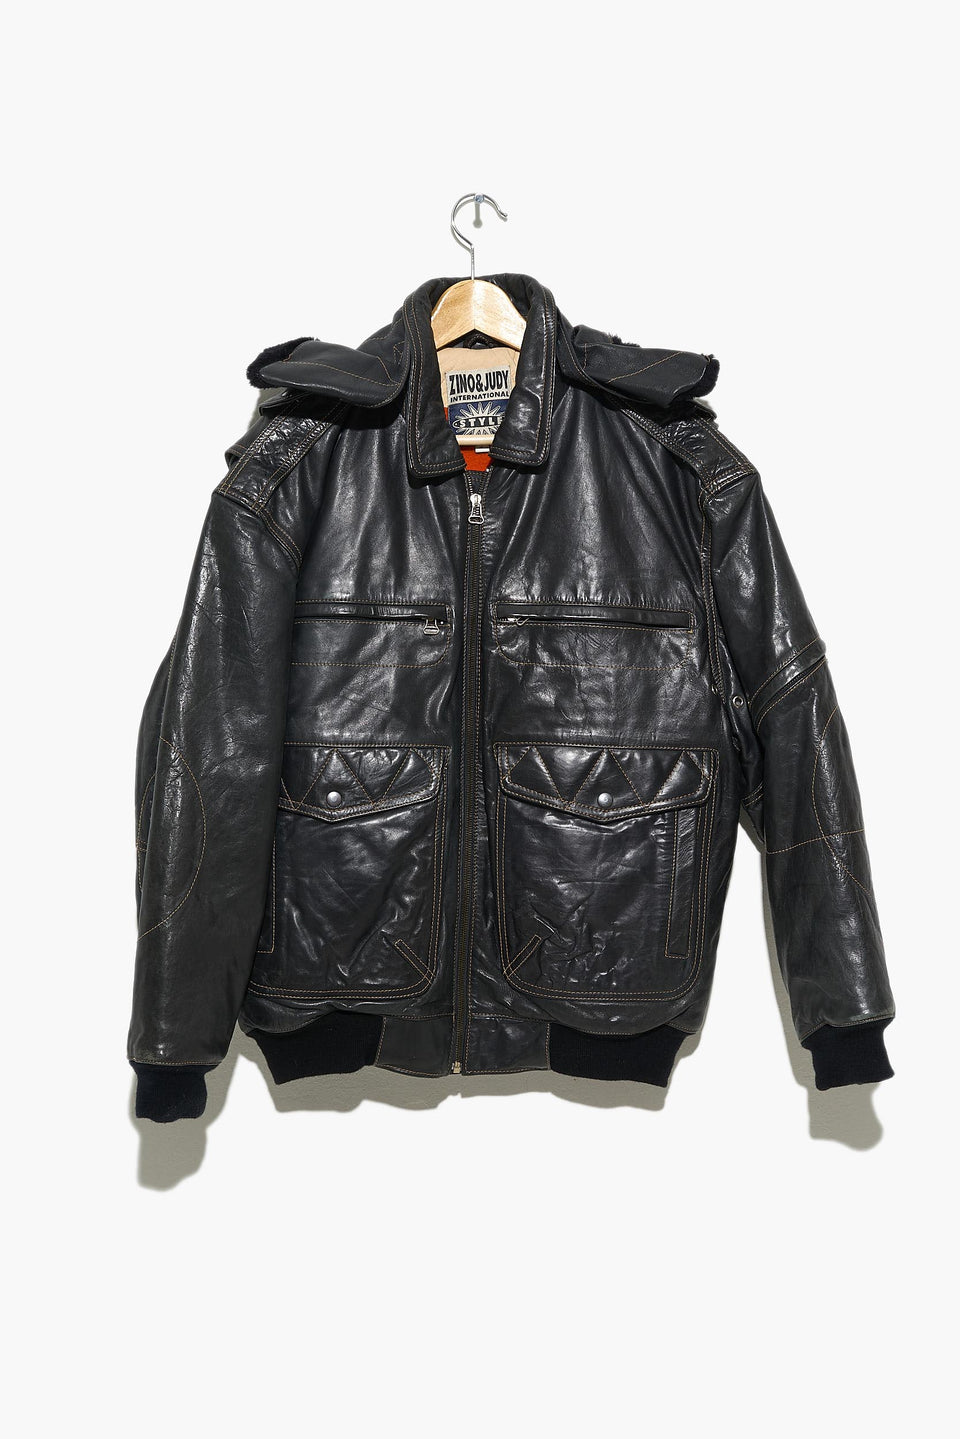 ZINO & JUDY leather jacket